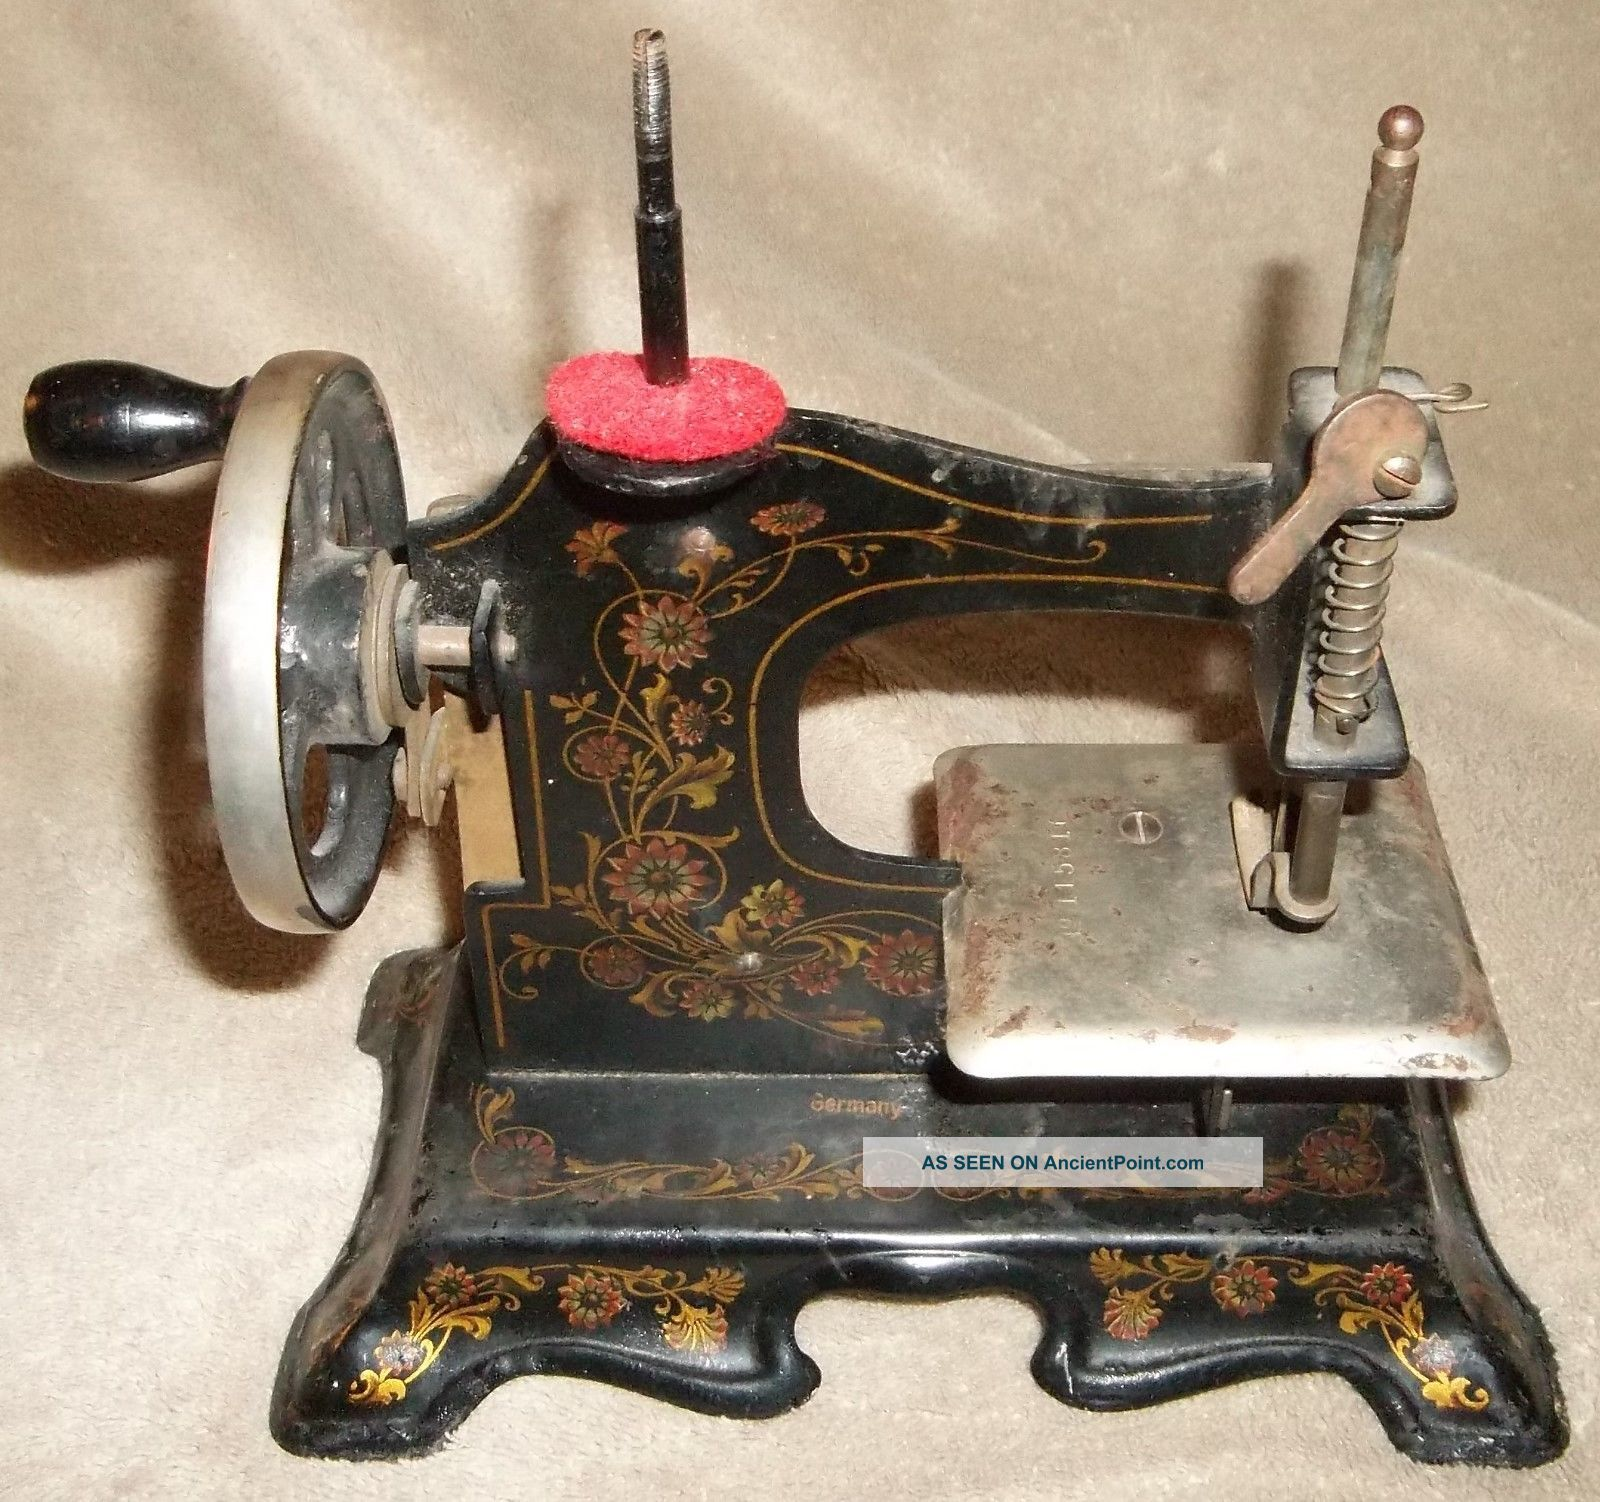 Vintage Antique German Childs Toy Metal Sewing Machine Hand Crank Tole Flower & Other Antique Sewing photo